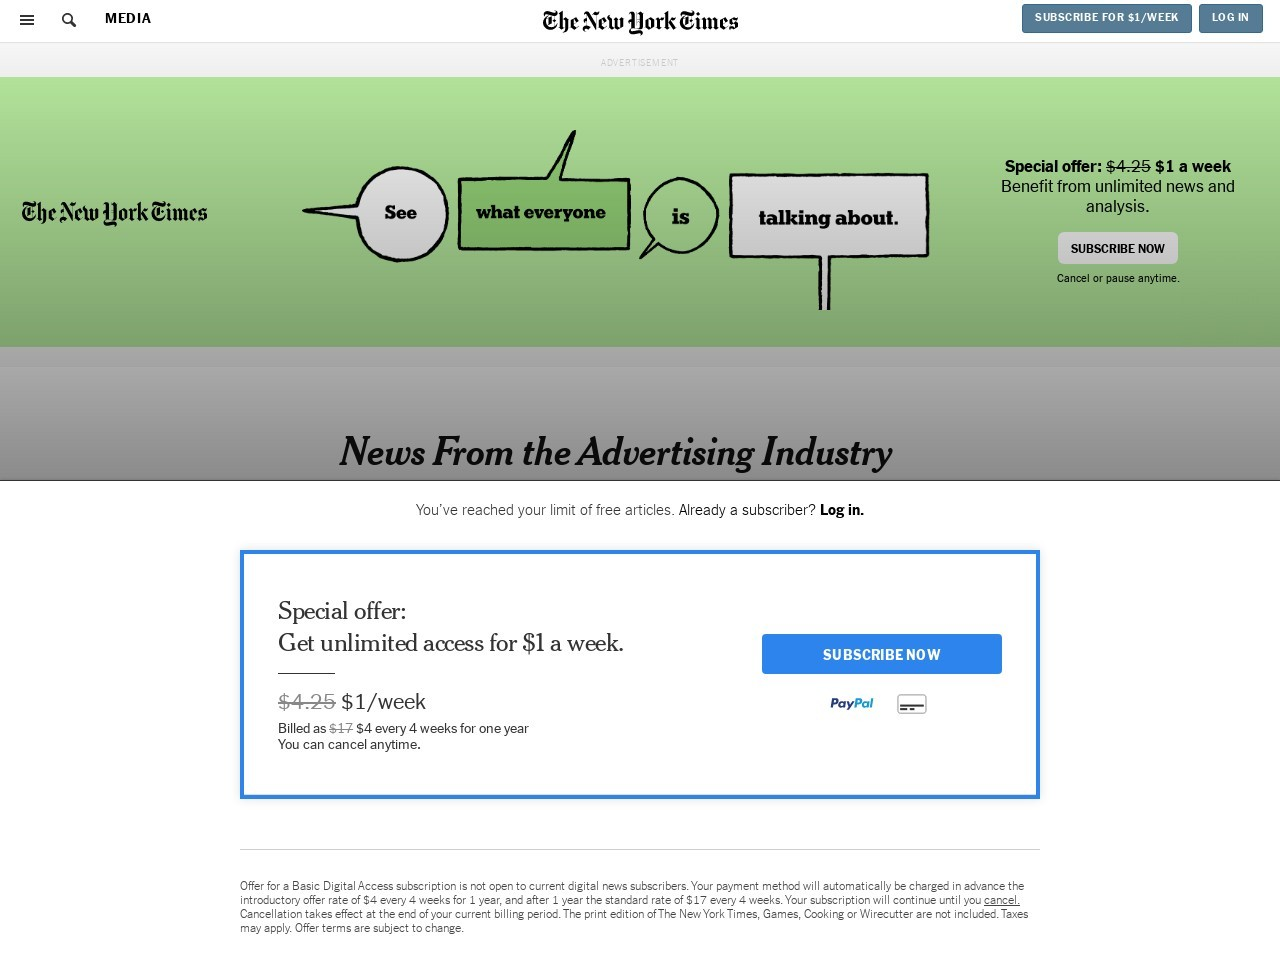 News From the Advertising Industry